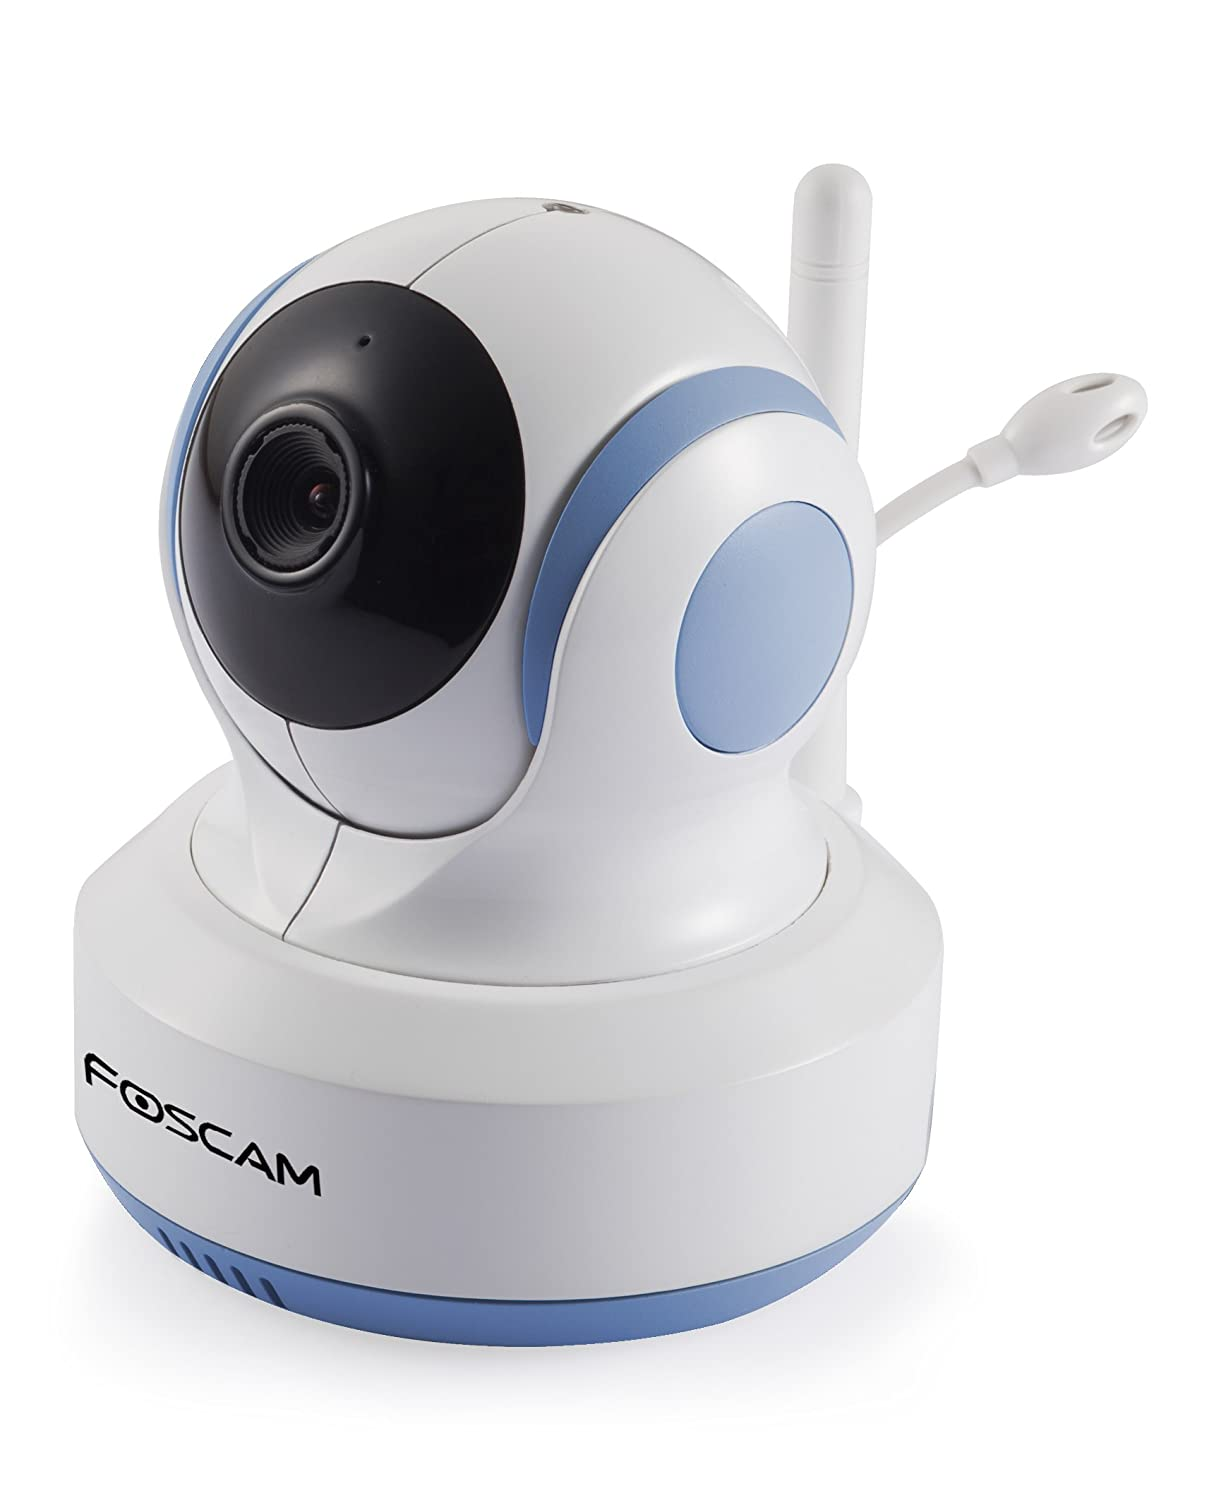 foscam fbm3502 digital video baby monitor auto motion tracking white blue. Black Bedroom Furniture Sets. Home Design Ideas